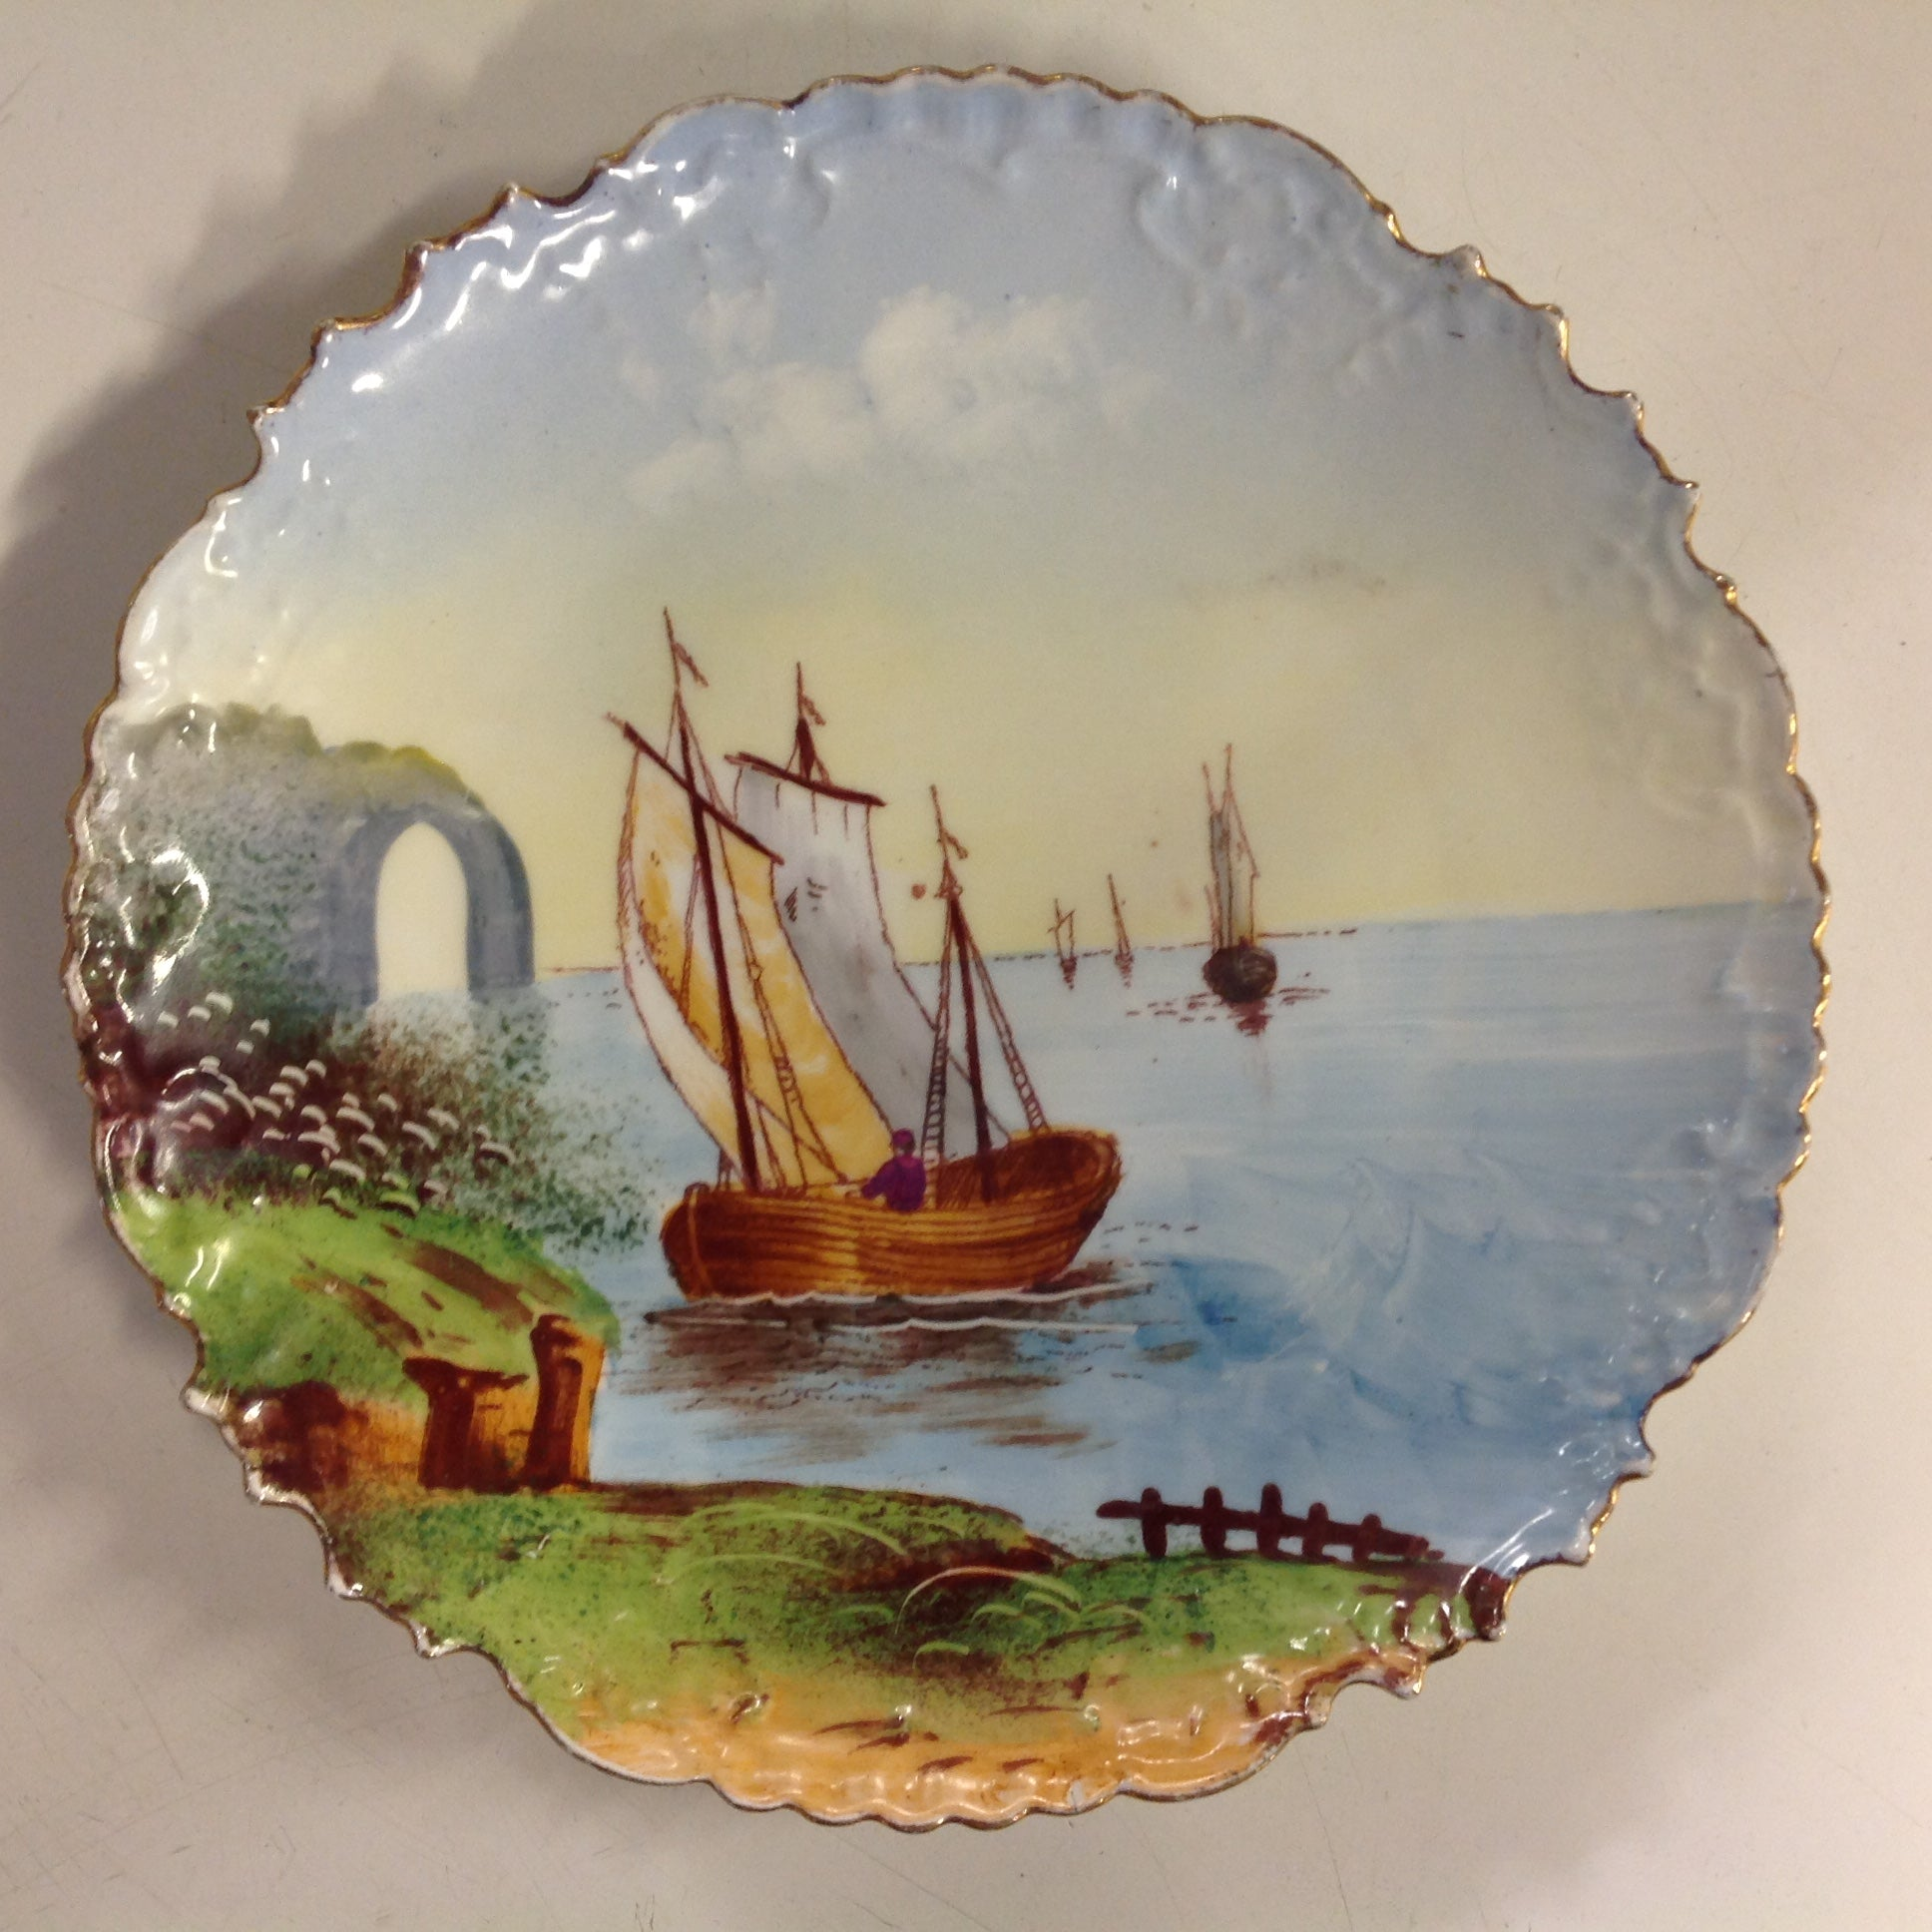 Vintage Limoges Porcelain Collector's Plate with Pastoral Sailing Scene